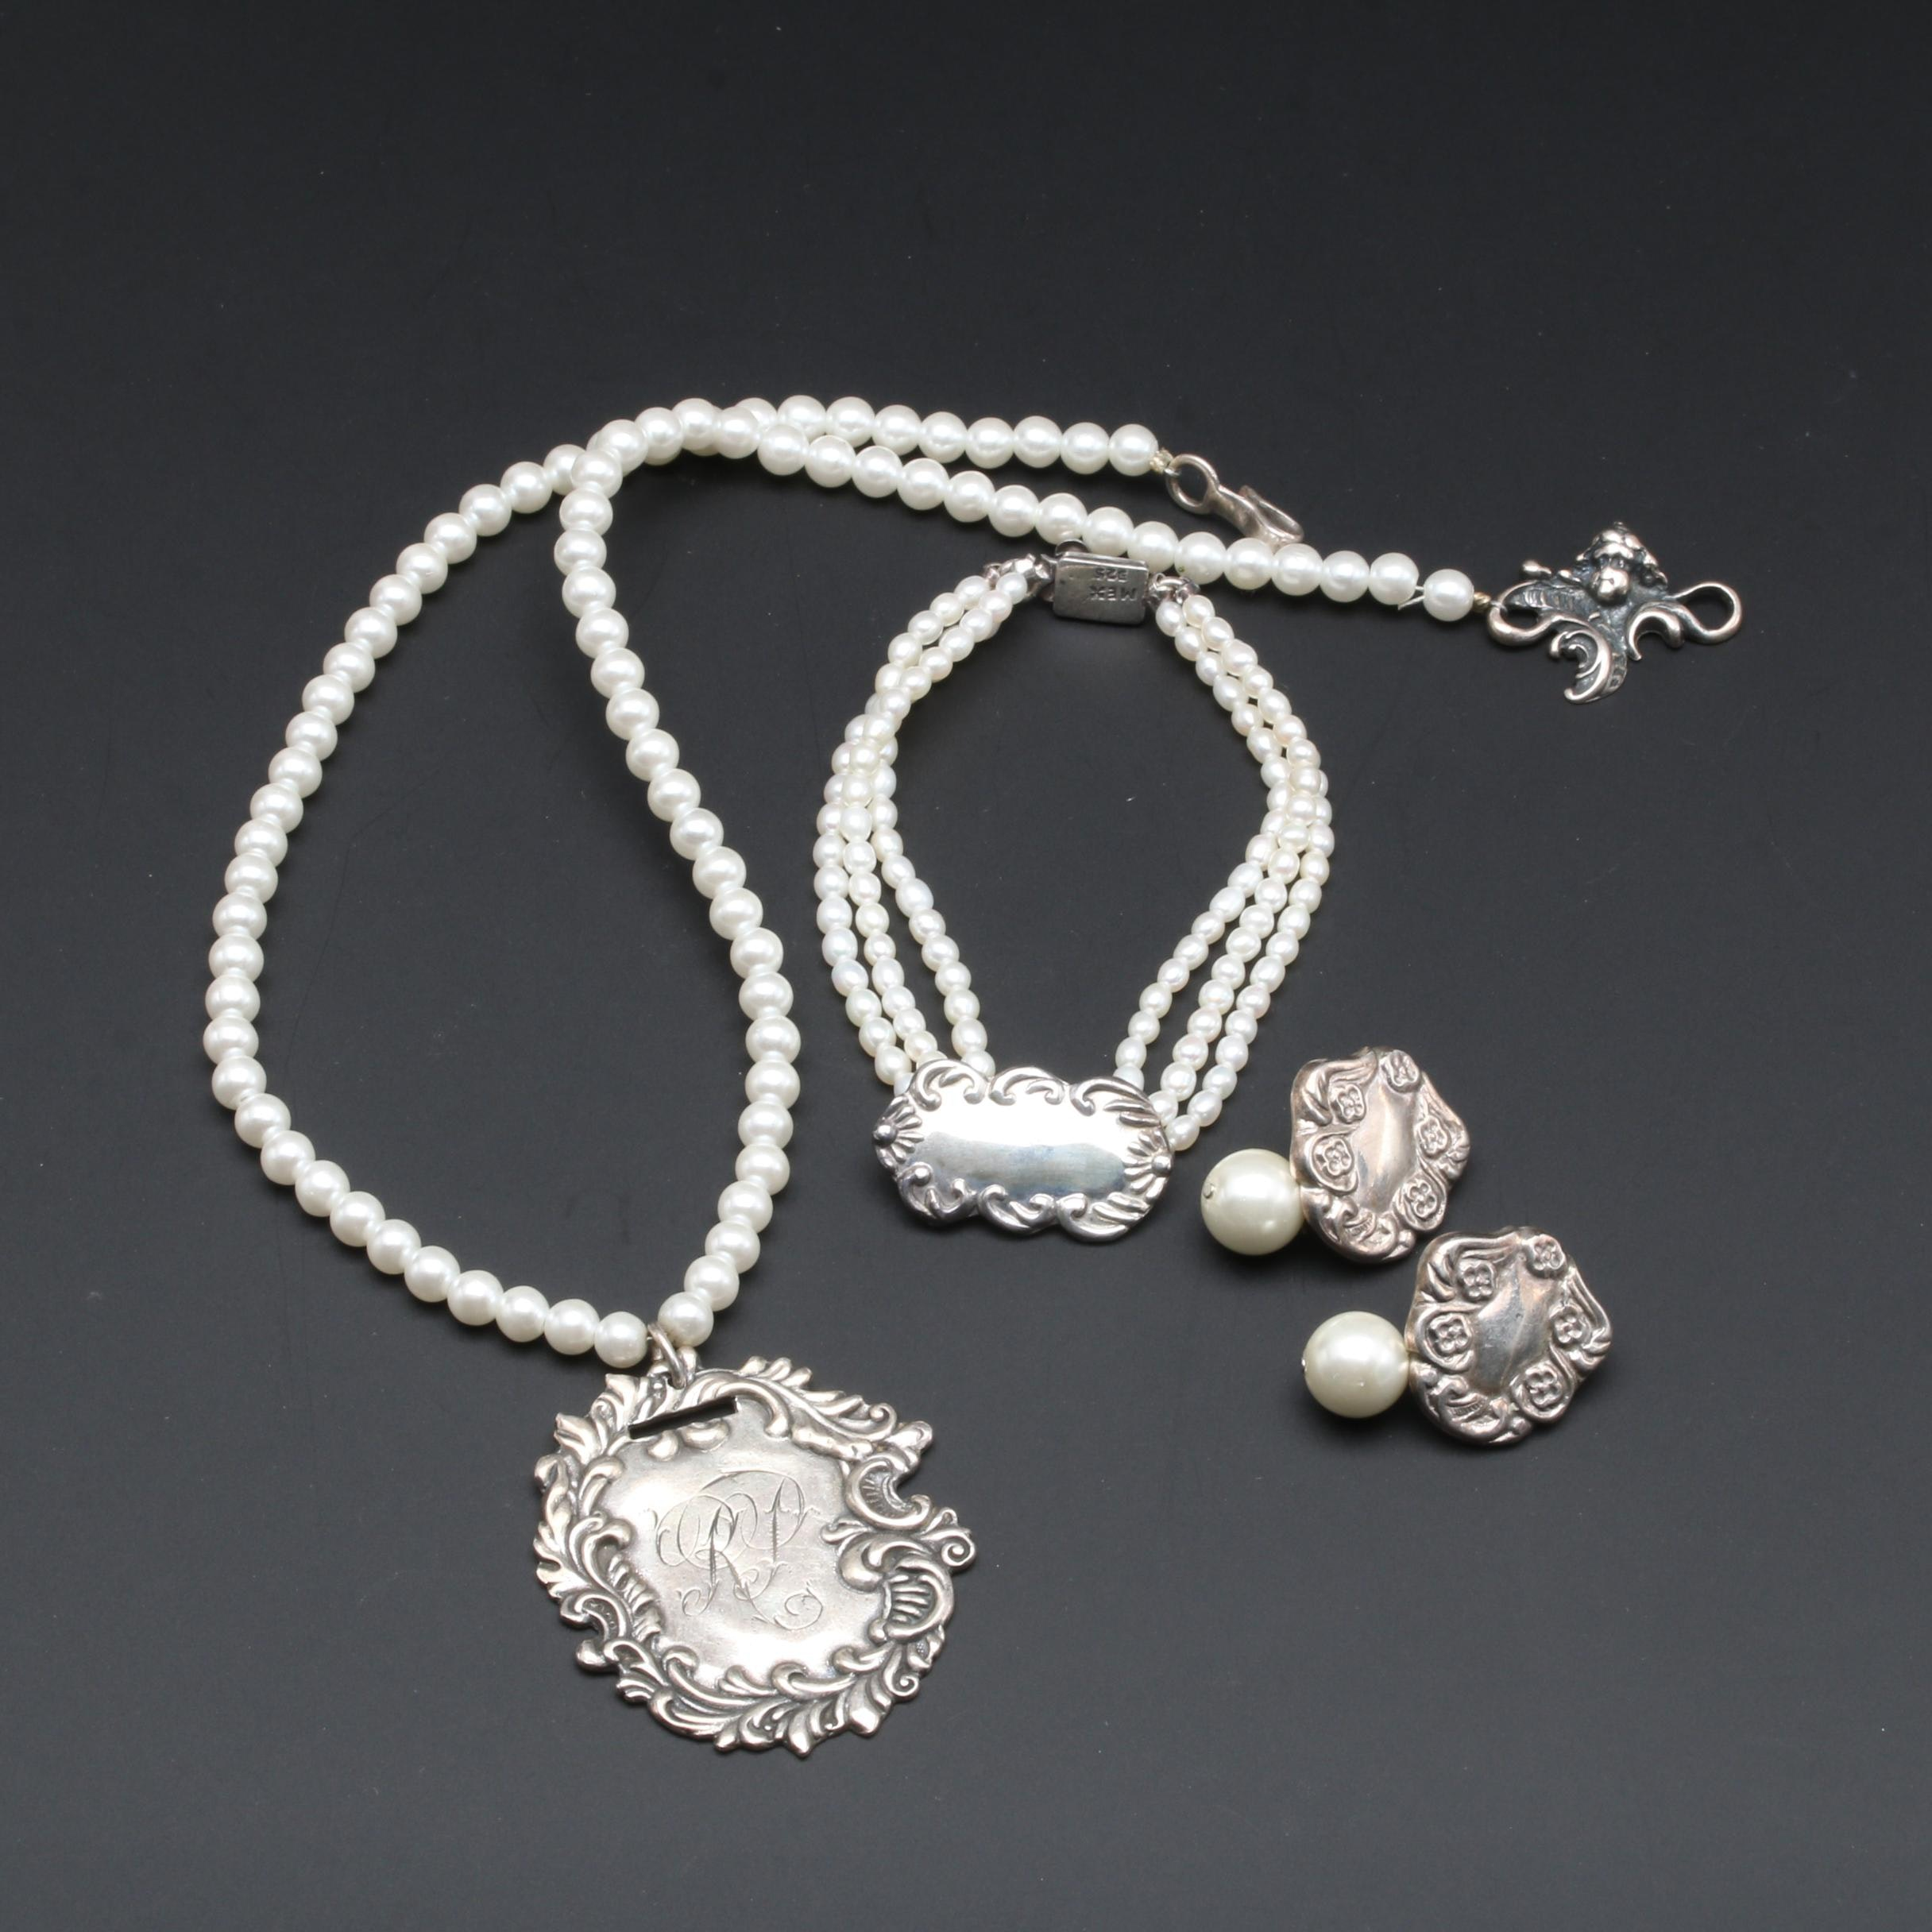 T. Foree Hunsicker Sterling Silver Pearl Necklace and More